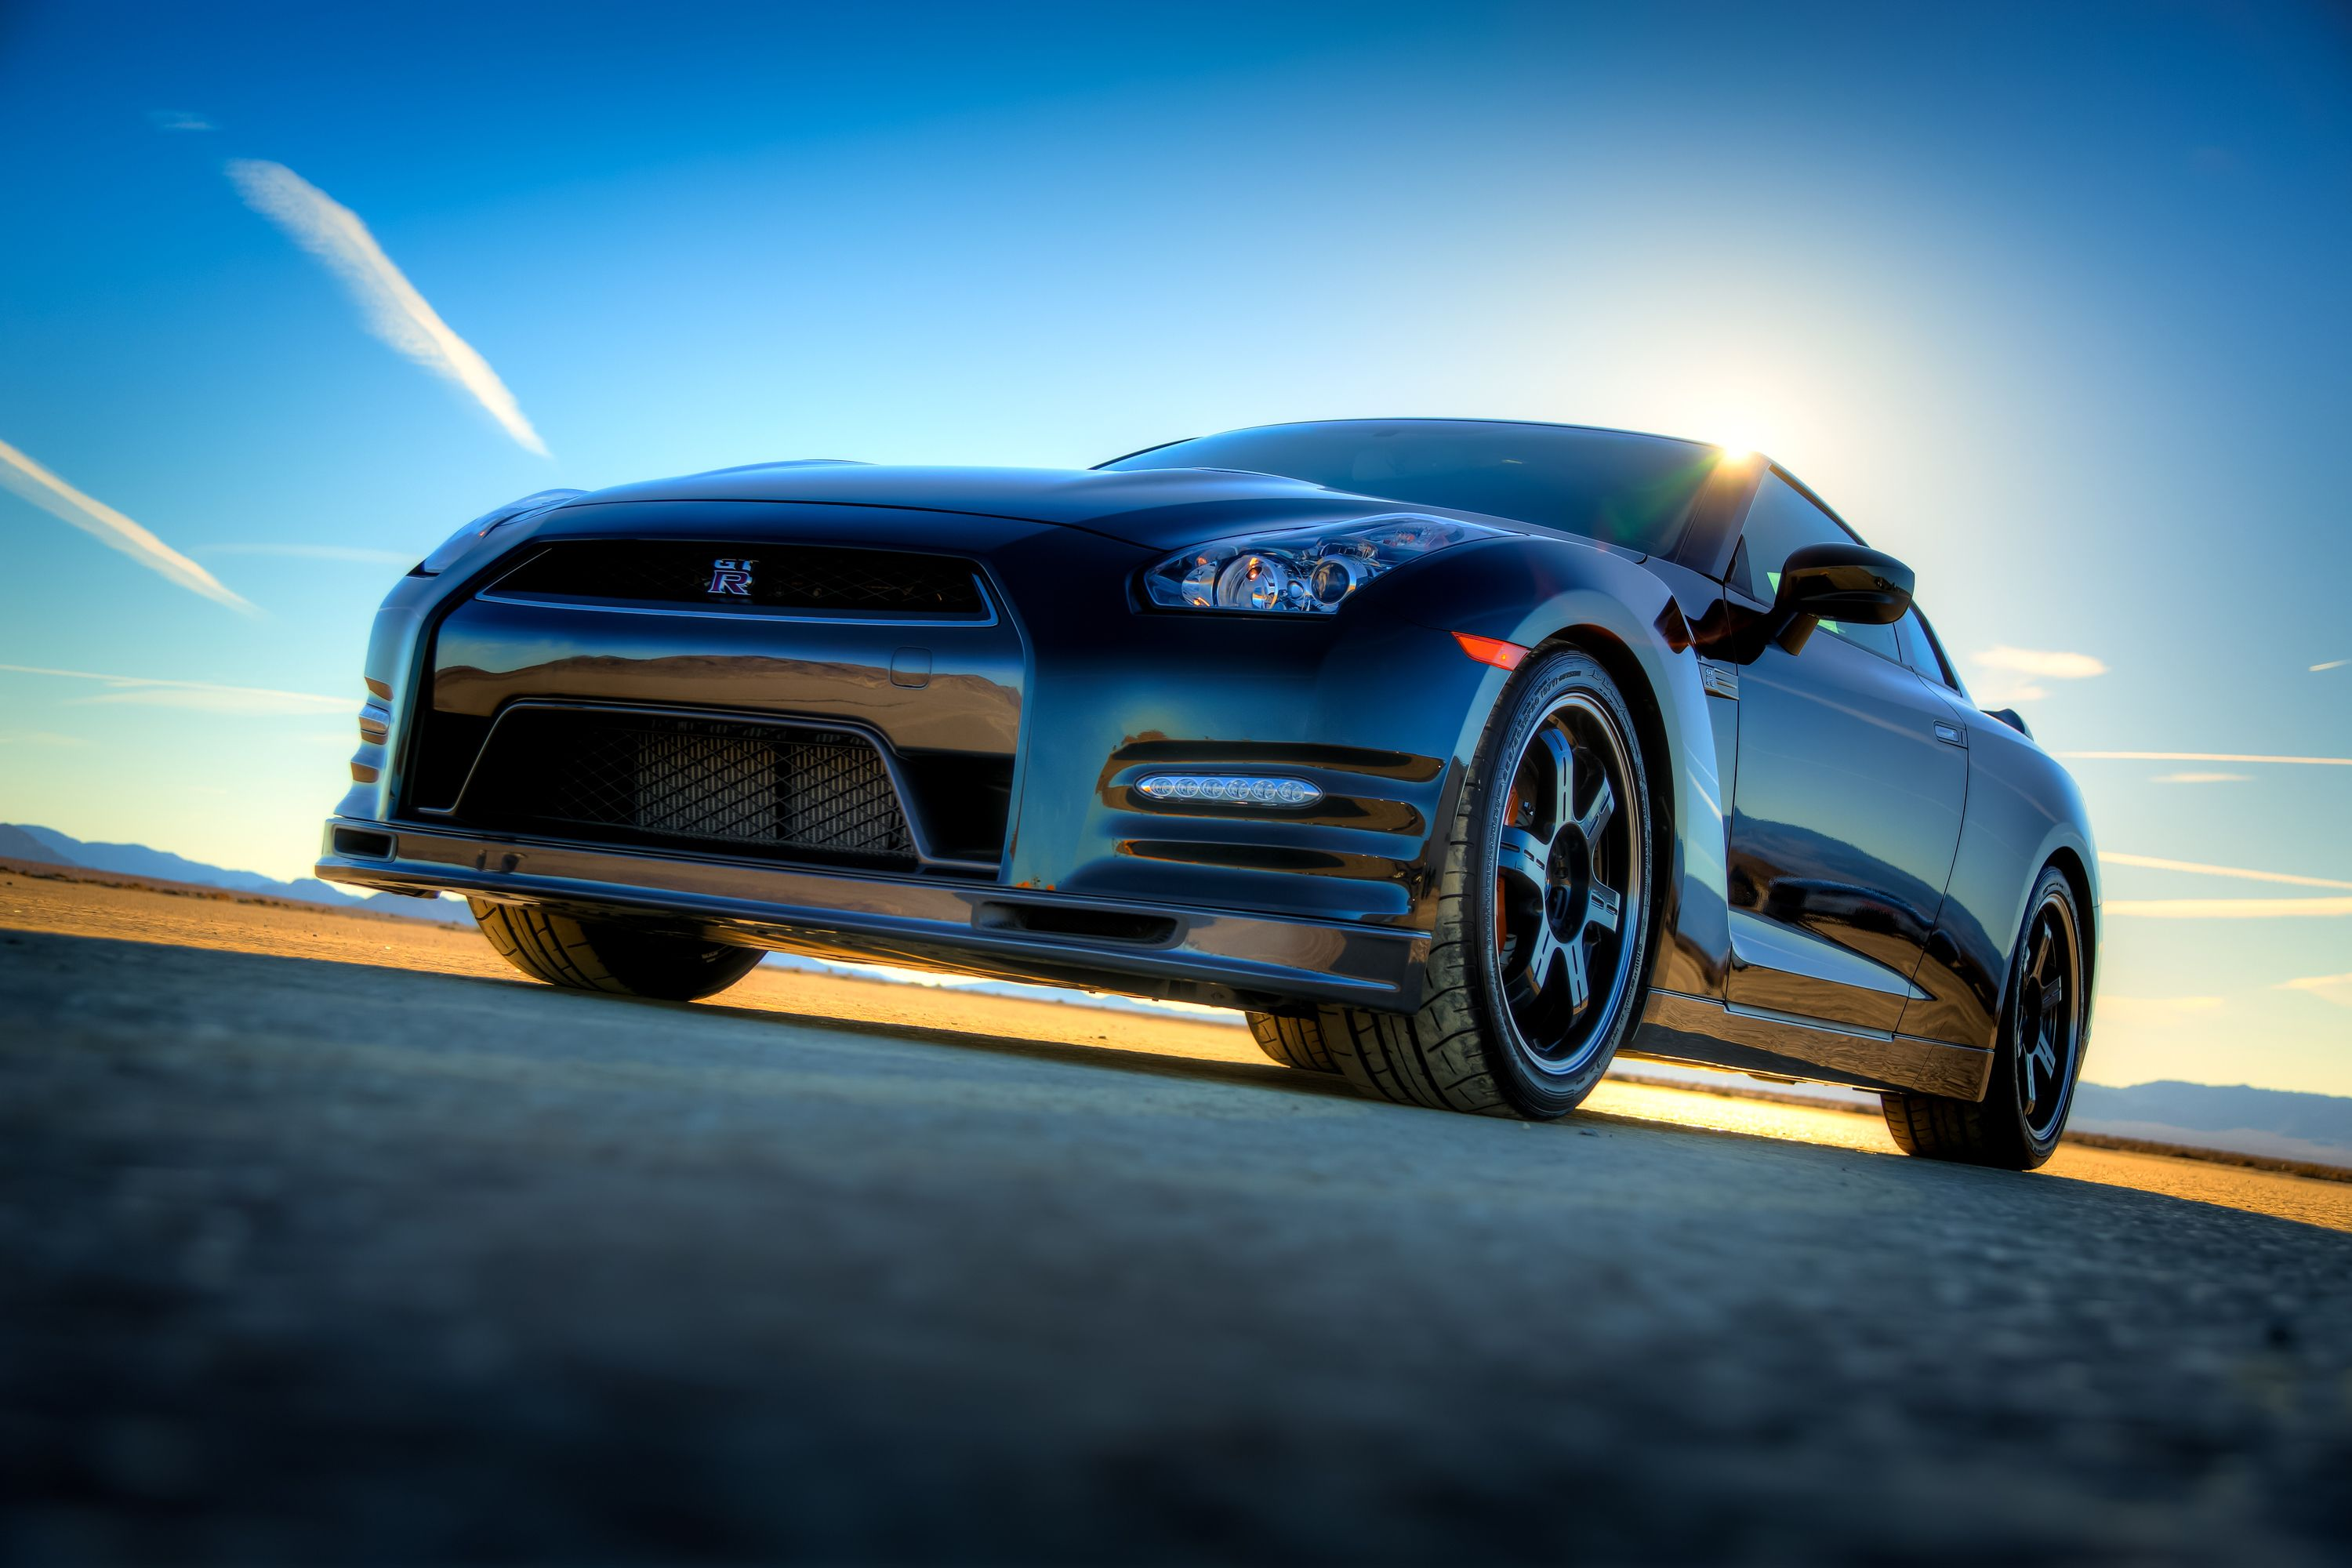 2014 Nissan Gt R Track Package Edition Nissan Gt Nissan Gt R Gtr 2014 nissan gt r track edition 2